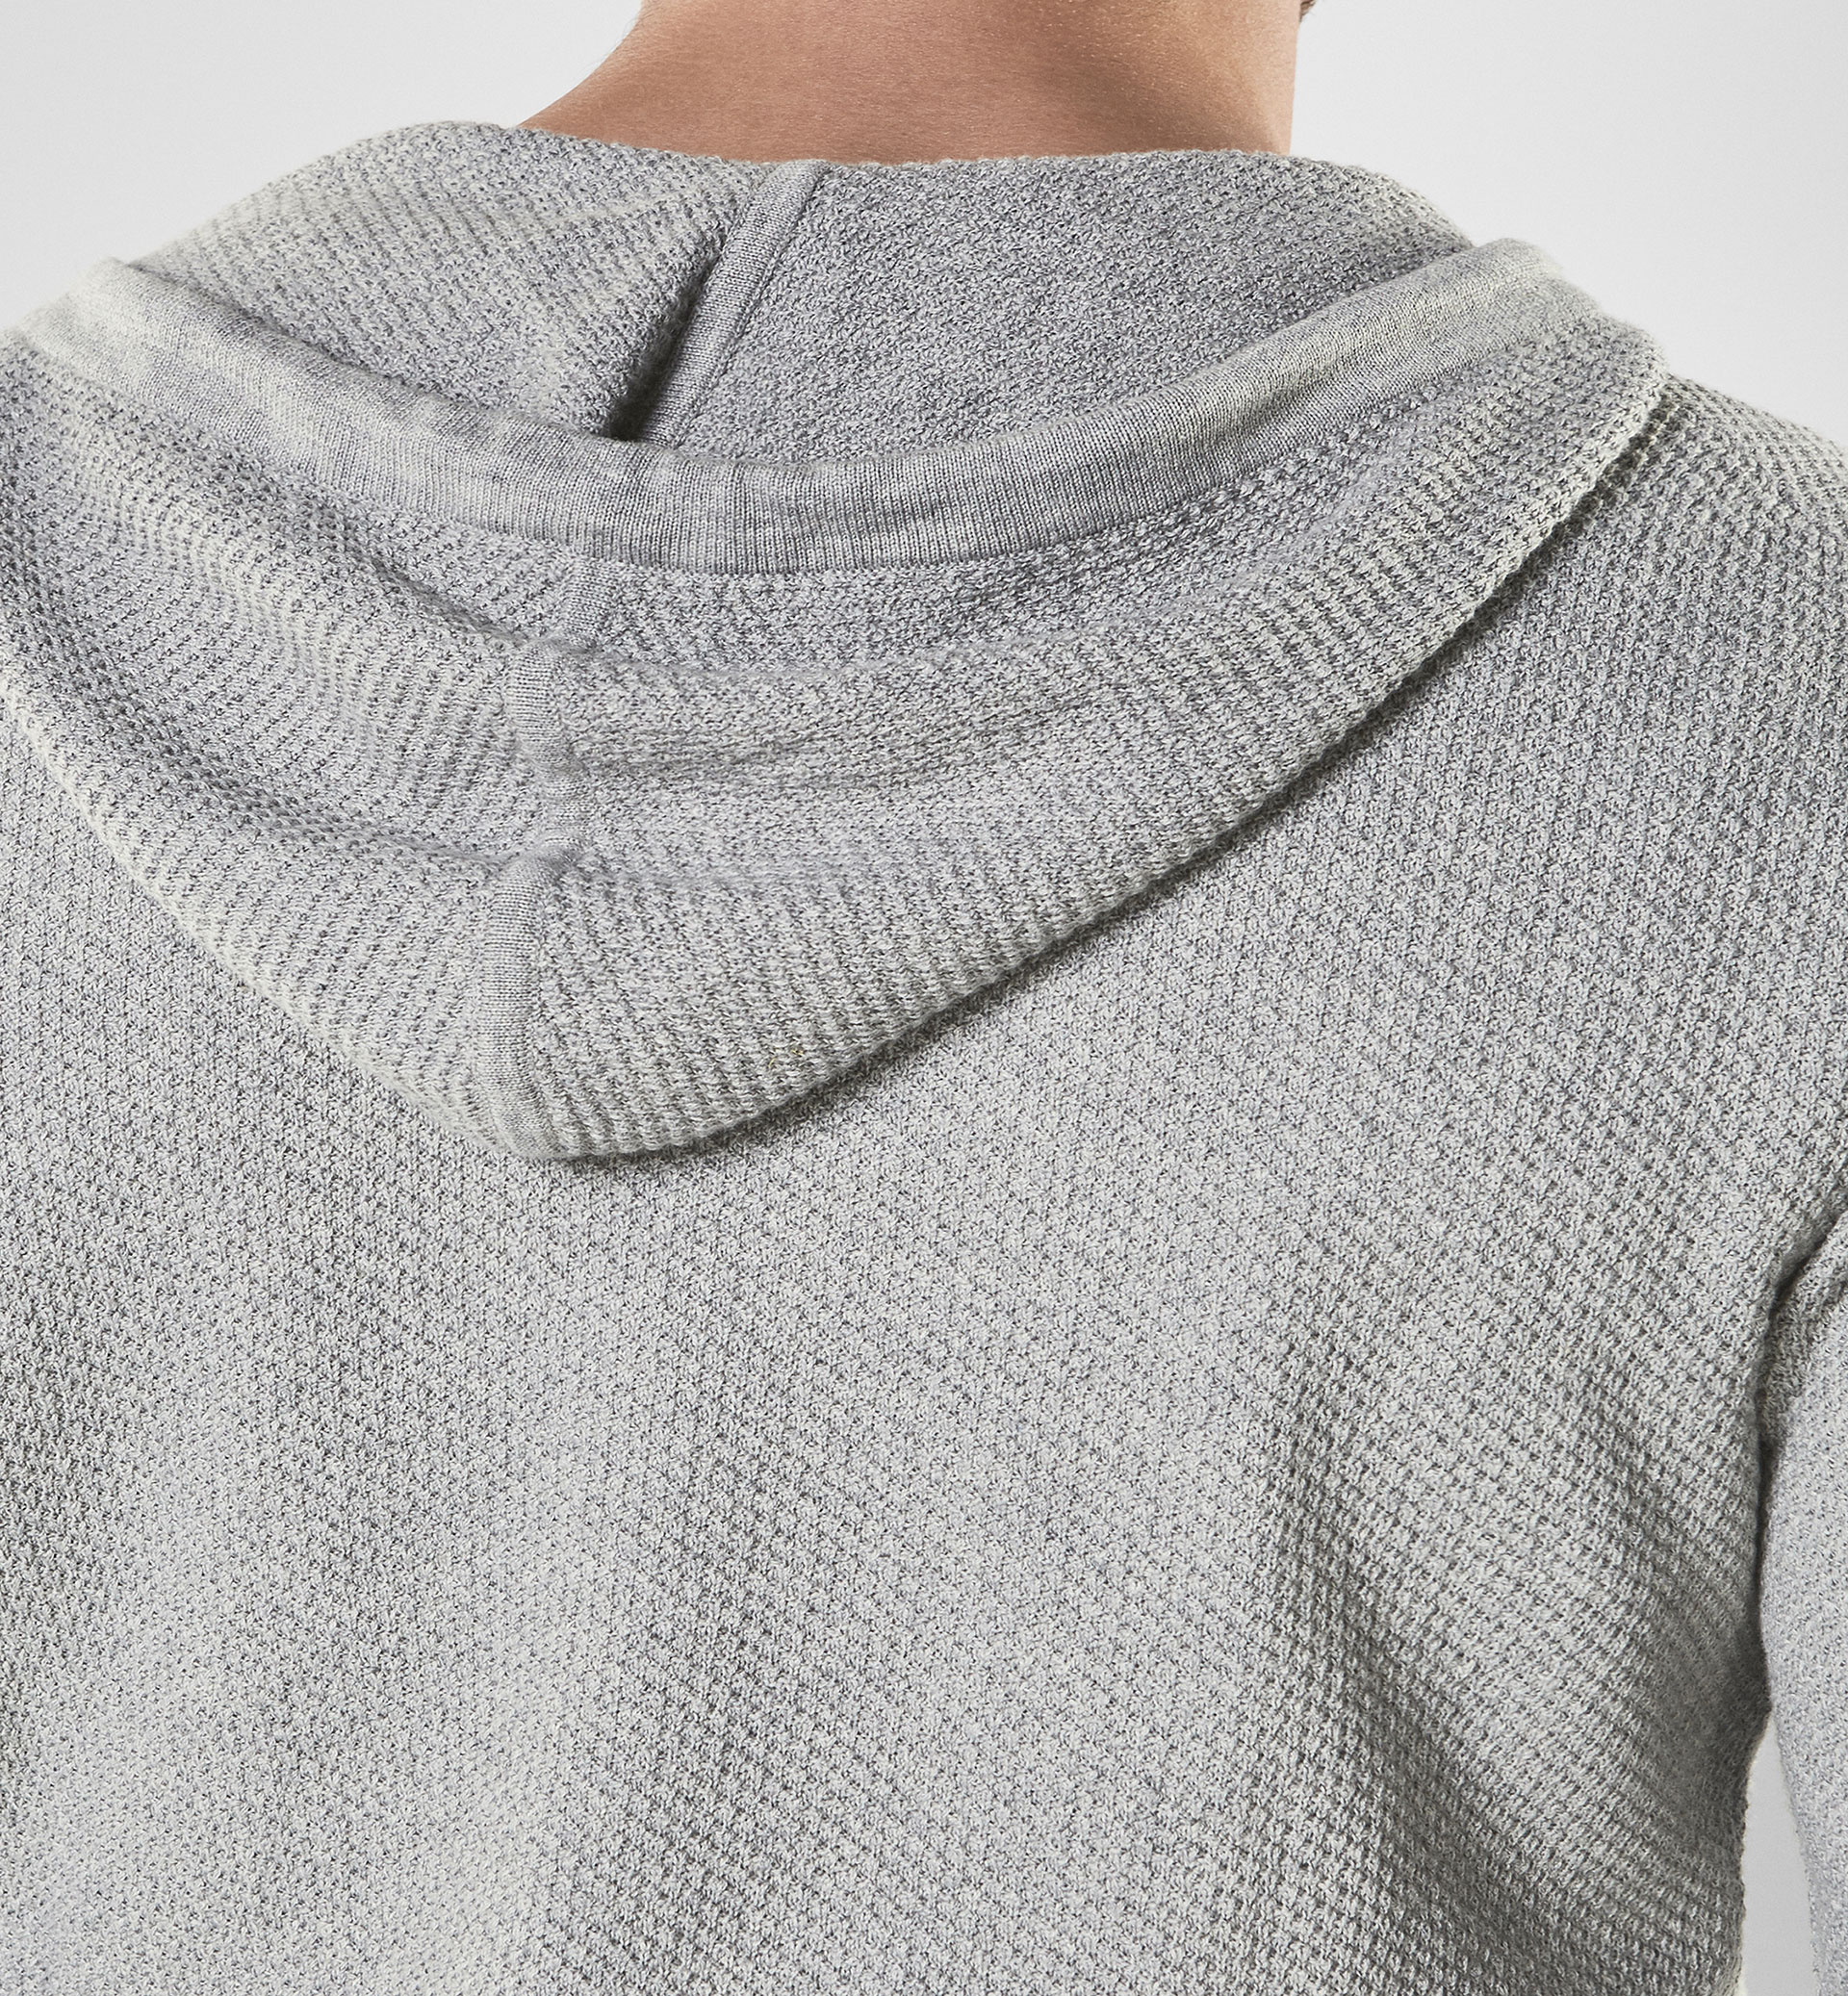 SOFT TEXTURED SWEATER WITH A CONTRASTING DETAIL